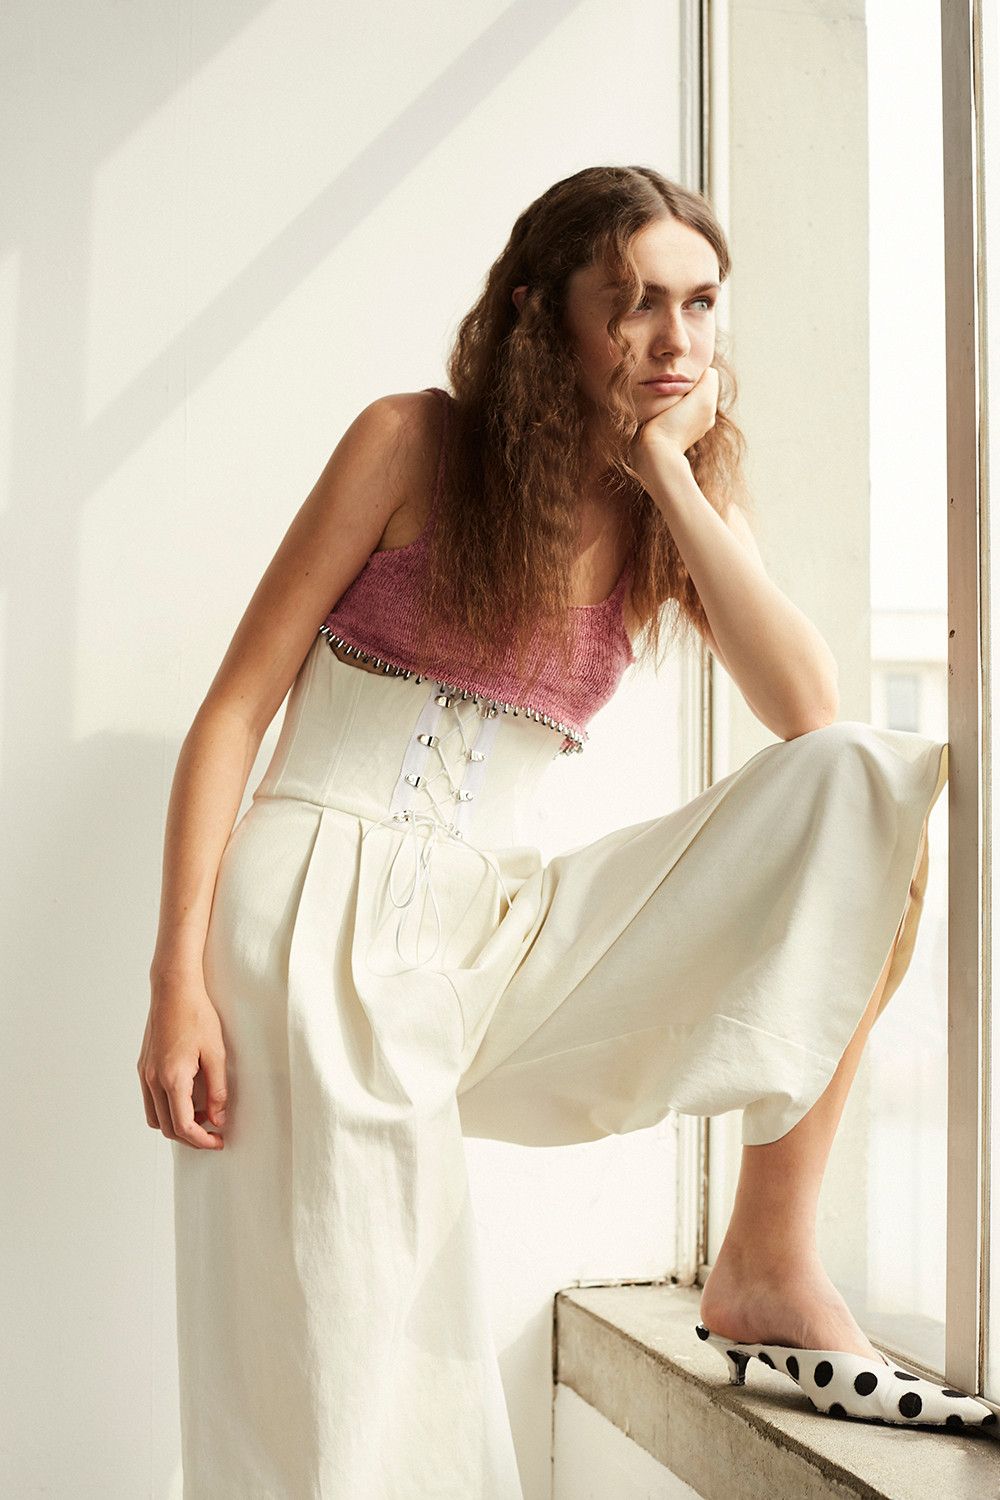 Top by Francesca R Palumbo. Trousers by Zenosyne. Shoes by Foam of the Days.